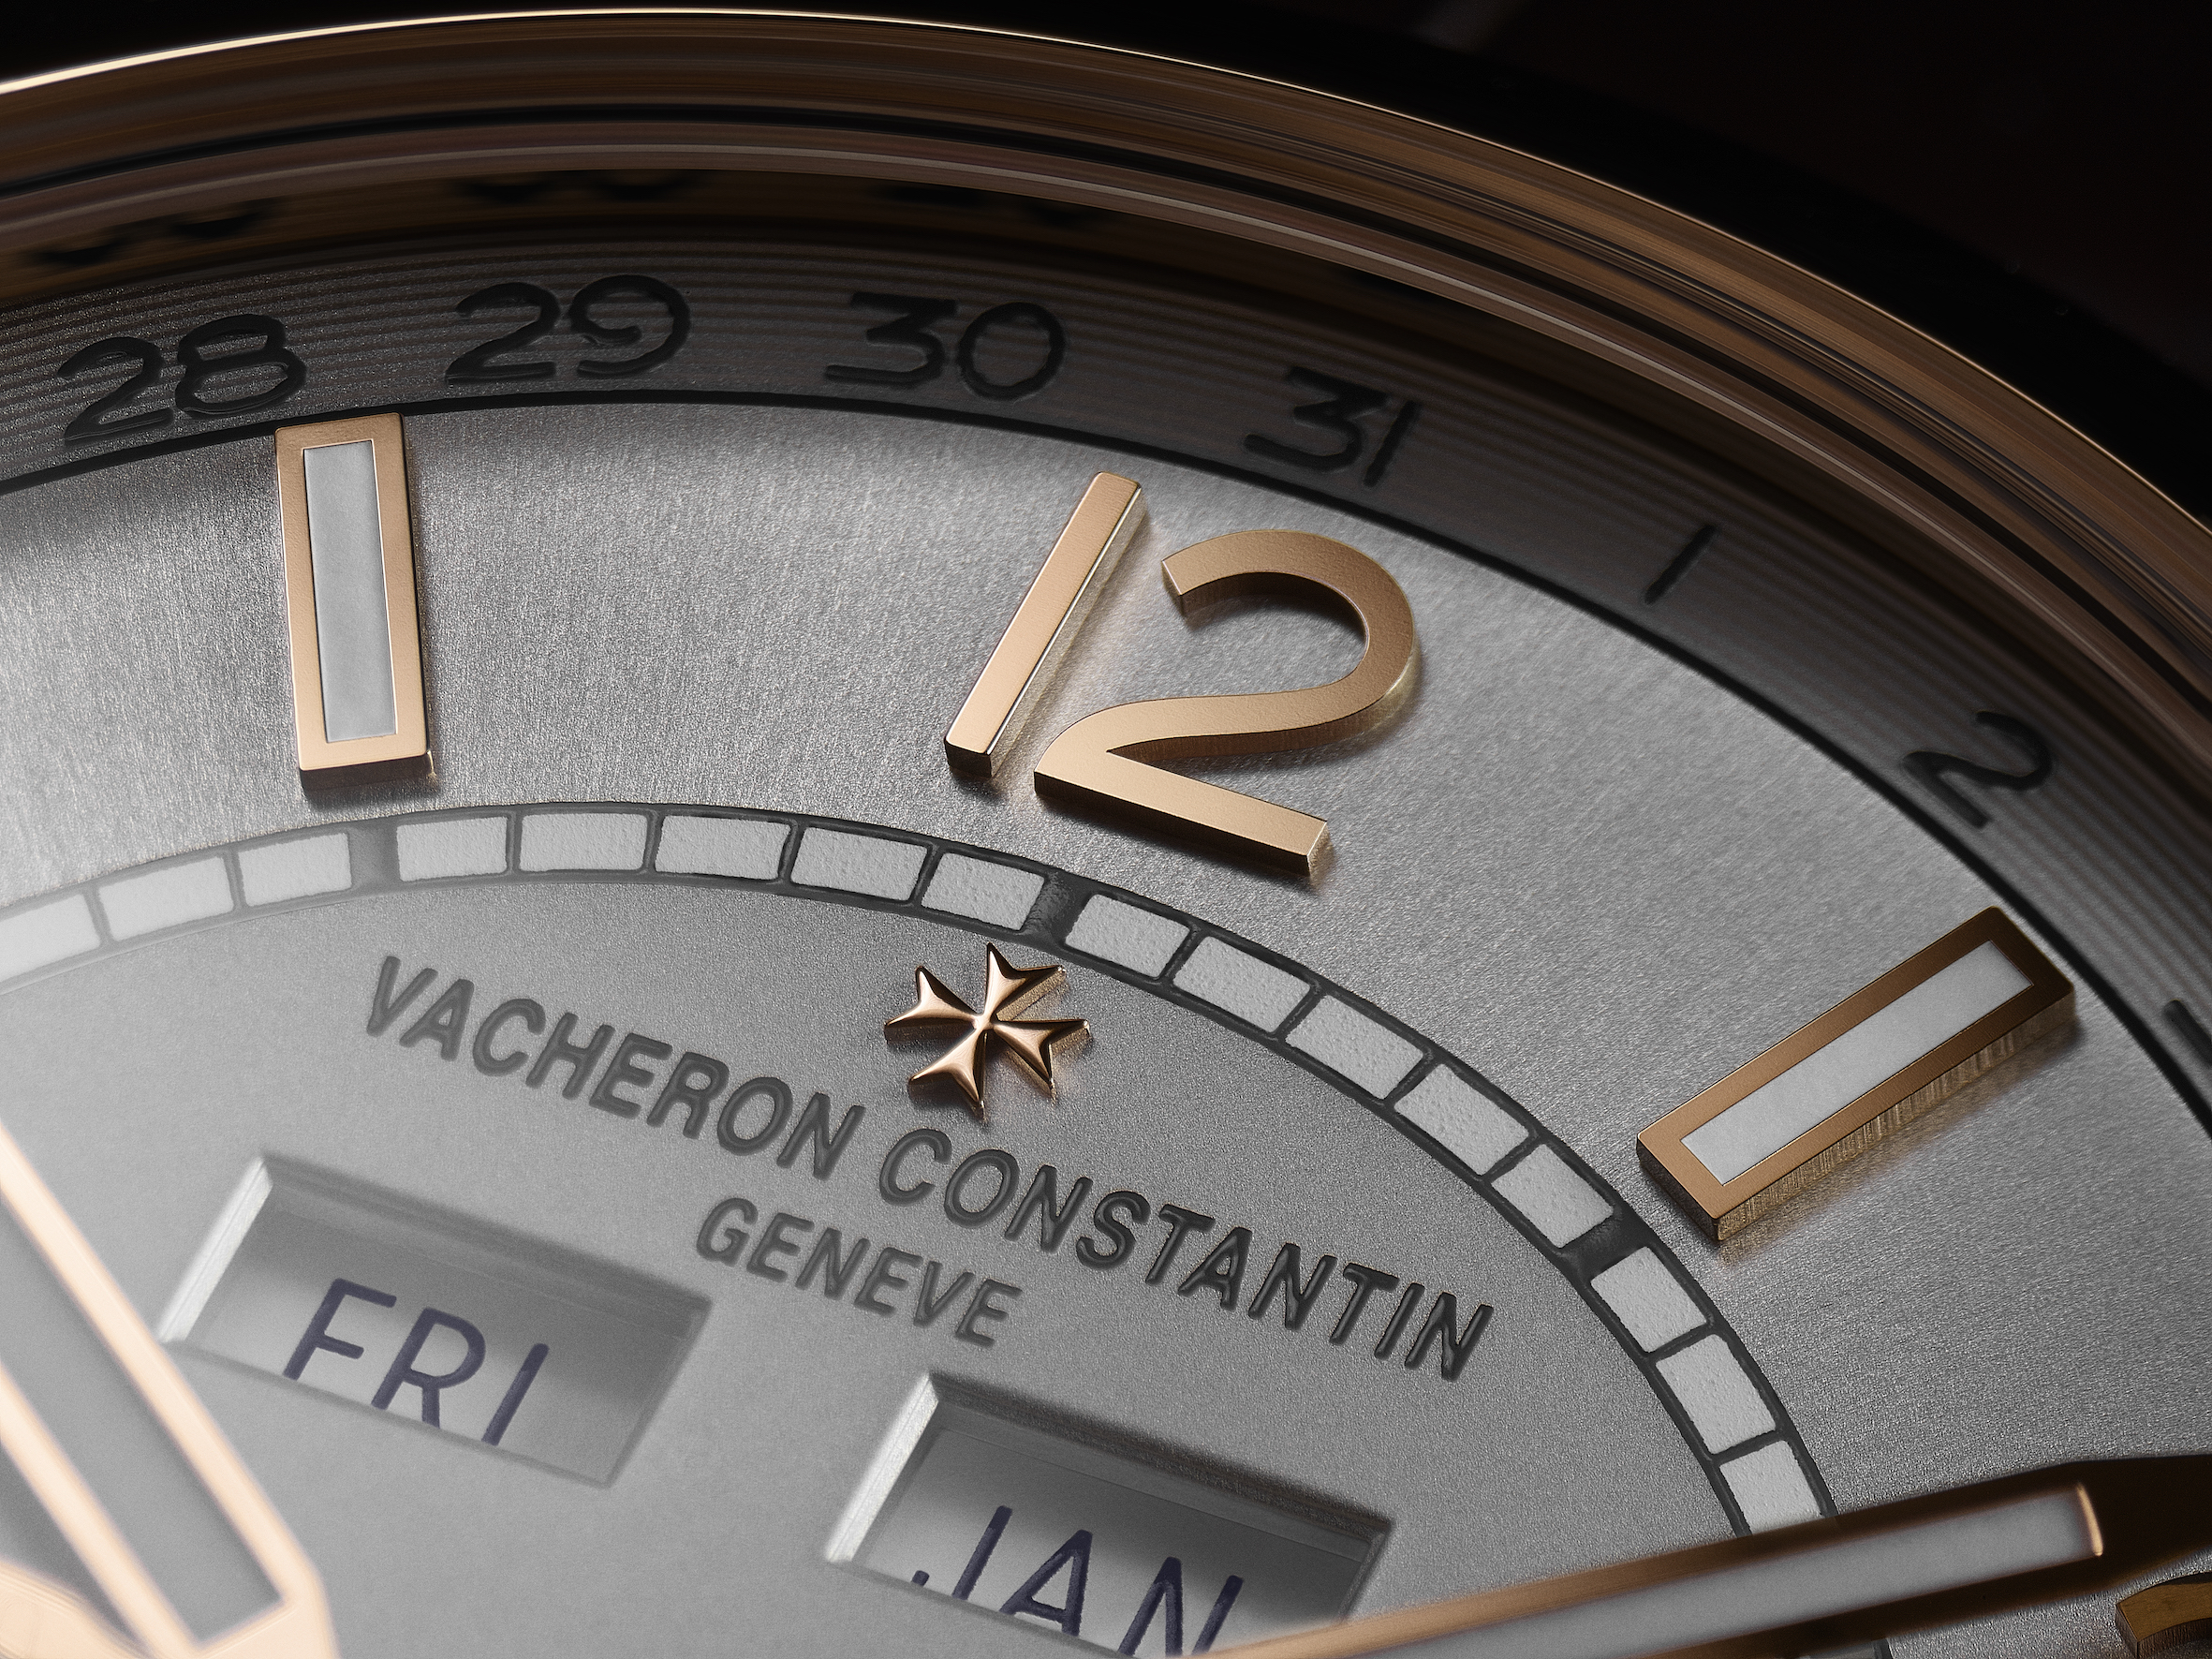 Vacheron Constantin FIFTYSIX complete calendar with precision moon phase. The FIFTYSIX complete calendar model is the collection highlight.